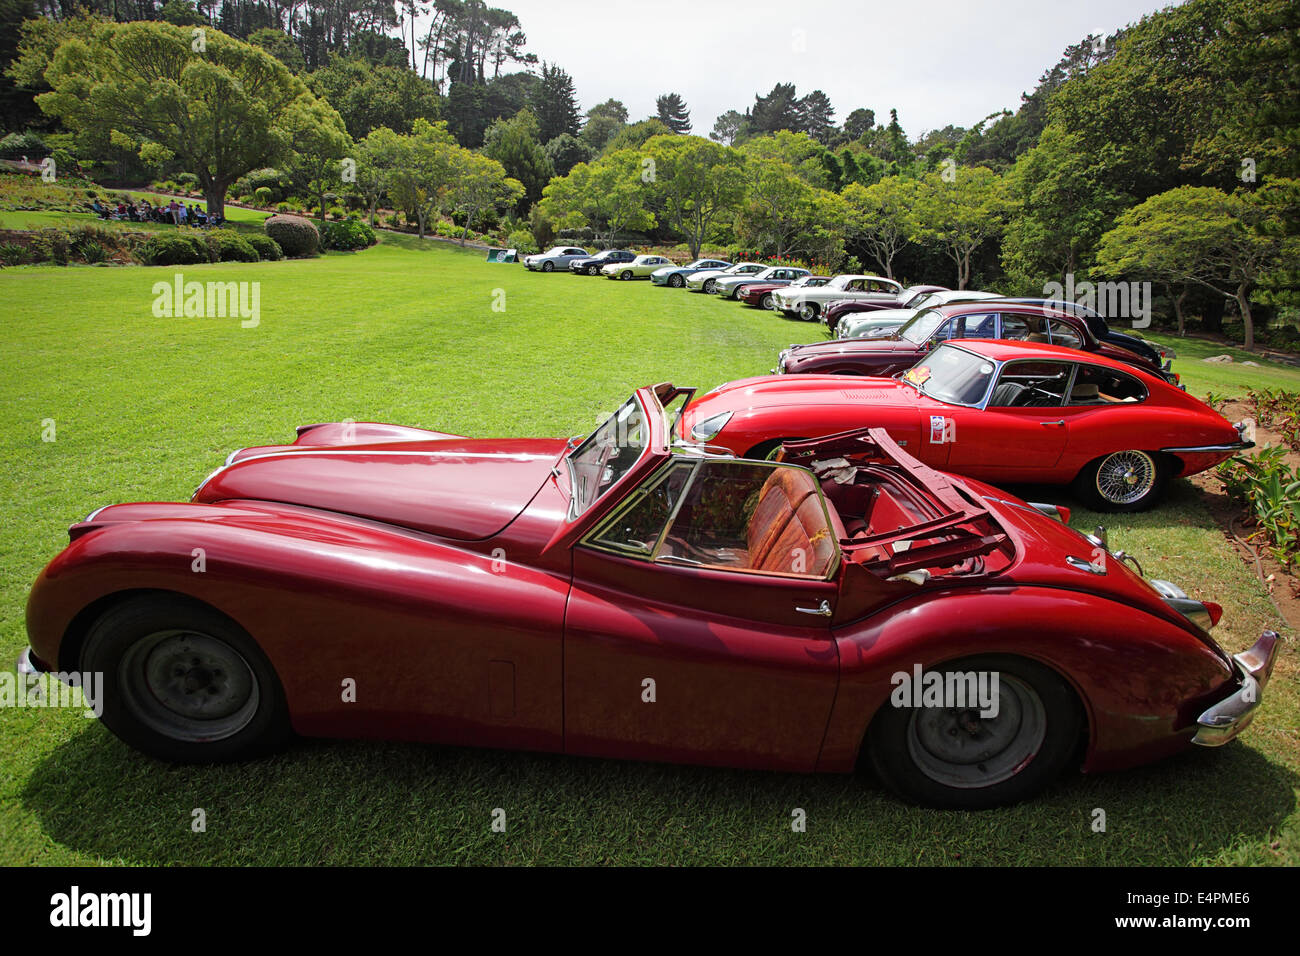 Vintage Jaguars On Display Cape Town South Africa Stock Photo